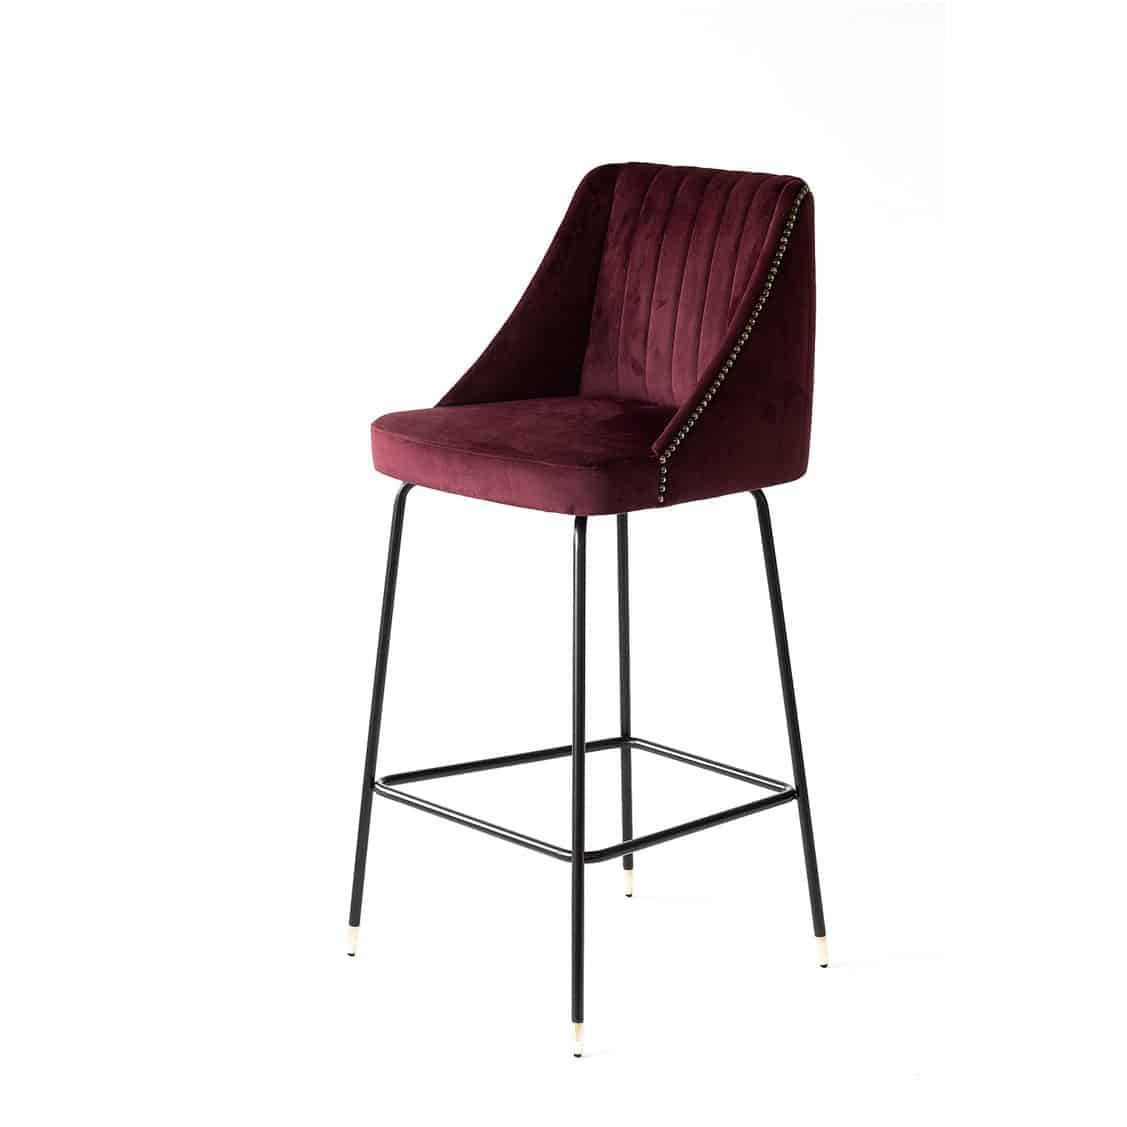 Compton Bar Stool available from DeFrae Contract Furniture Soho